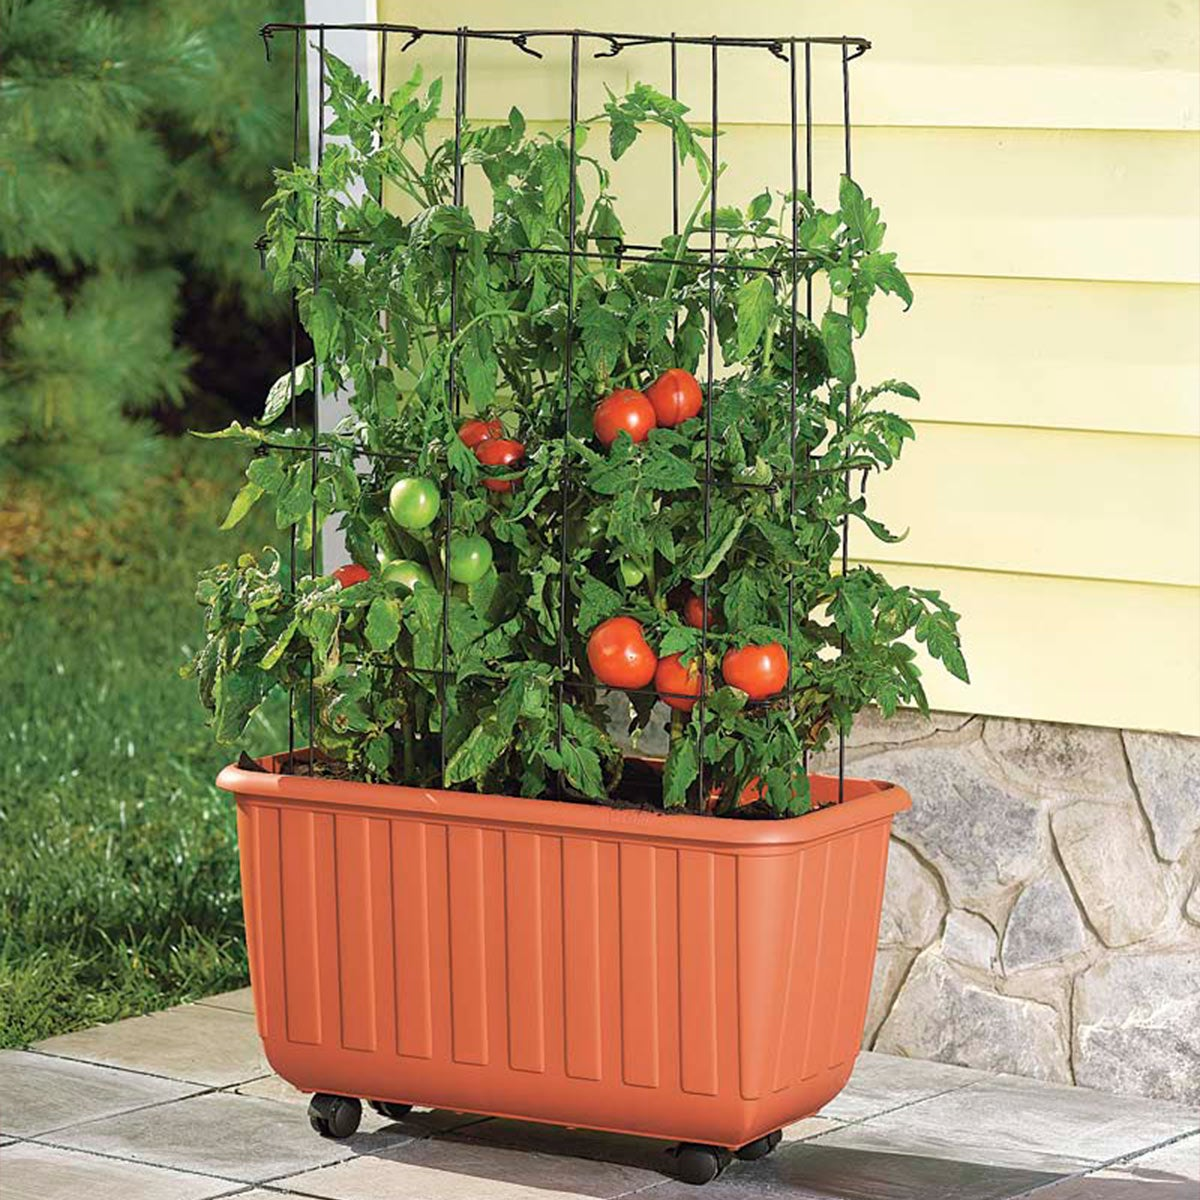 Rolling Self-Watering Tomato Planter and Rust-Resistant Tower